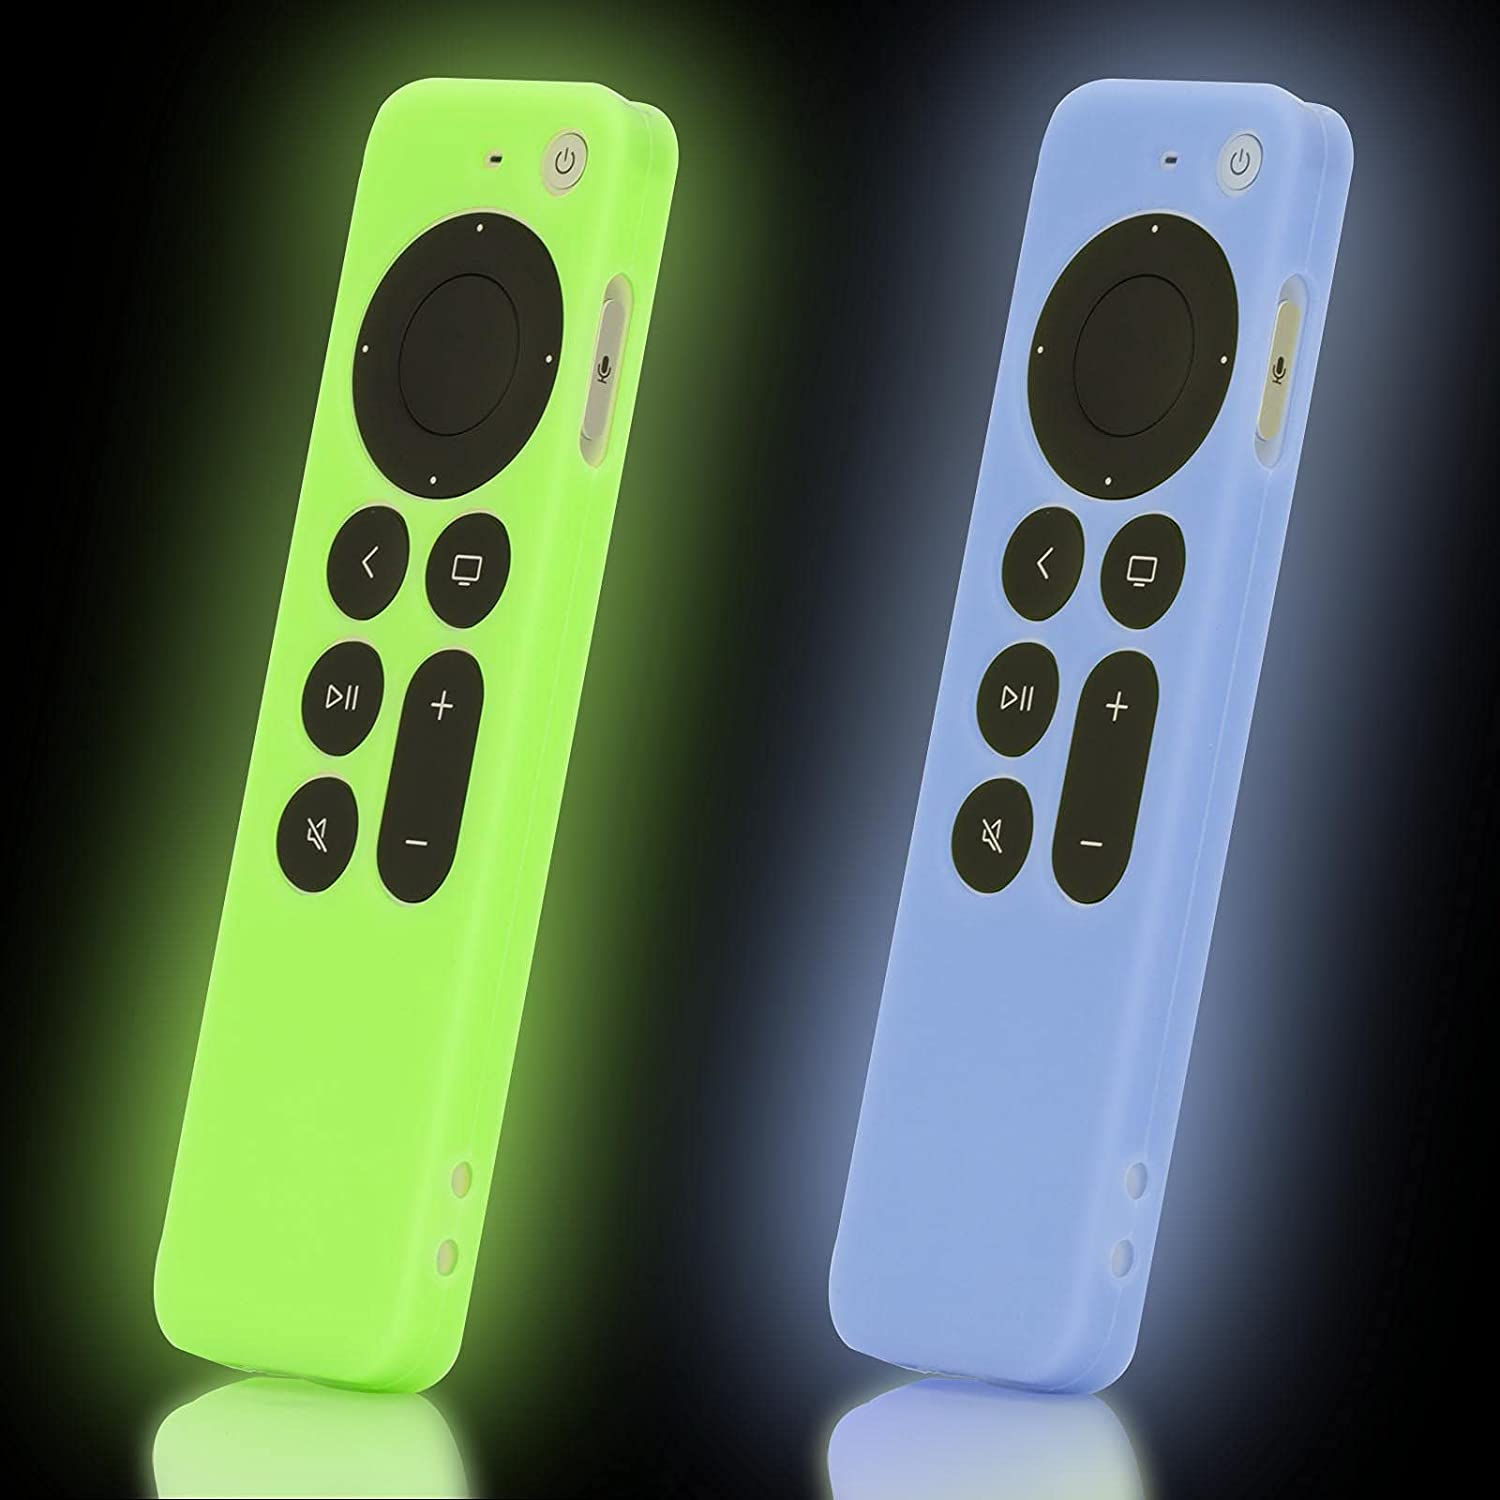 2-Pack Green and Blue Remote Case Cover Replacement for New Apple 4k TV 2021 Series 6 Generation / 6th Gen Remote Control, Silicone Siri 2nd Skin Glow in Dark with Lanyard - LEFXMOPHY